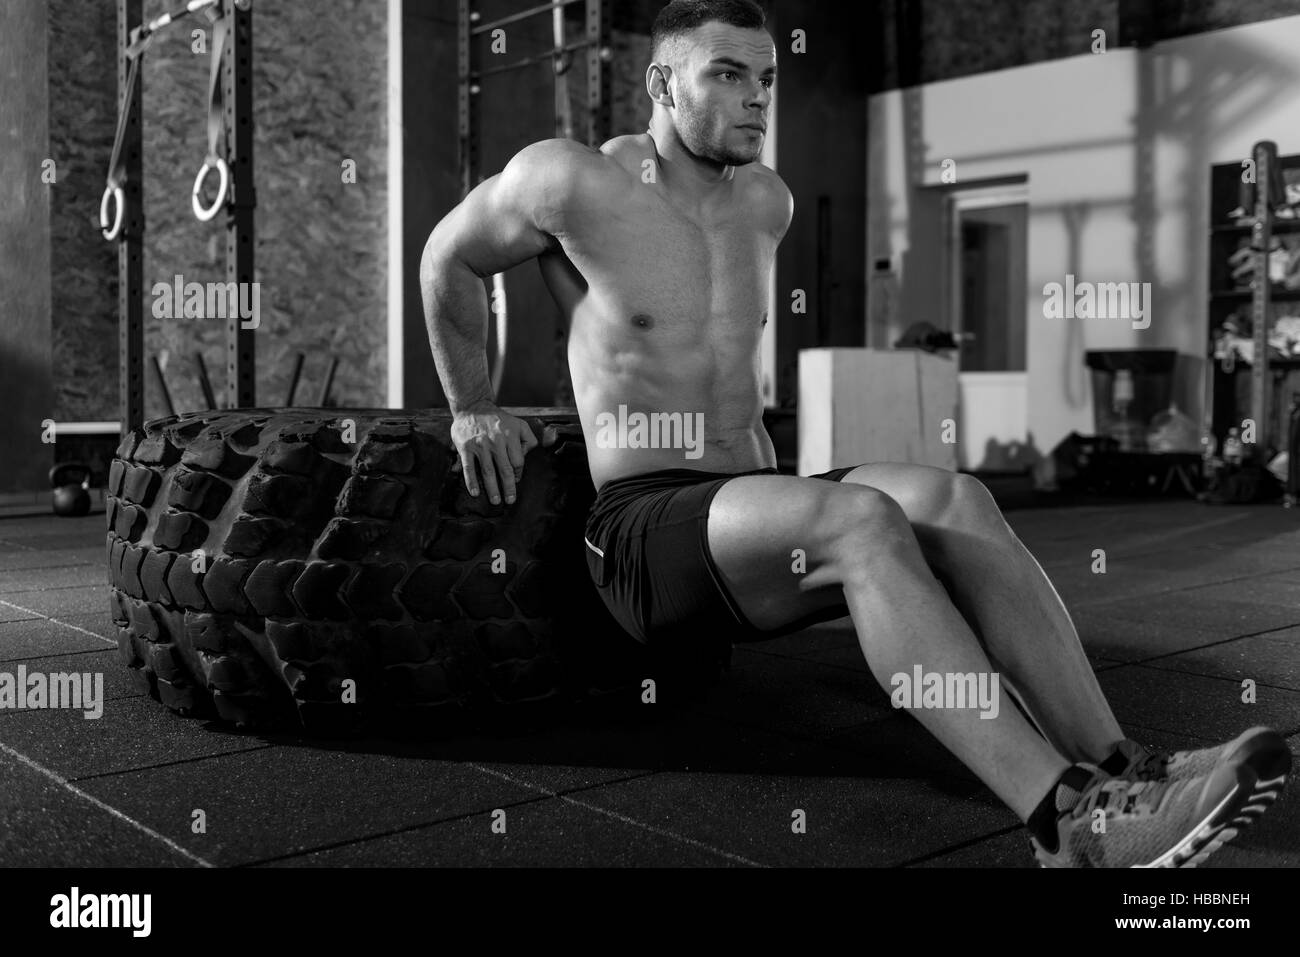 Handsome athletic man building up his muscles - Stock Image